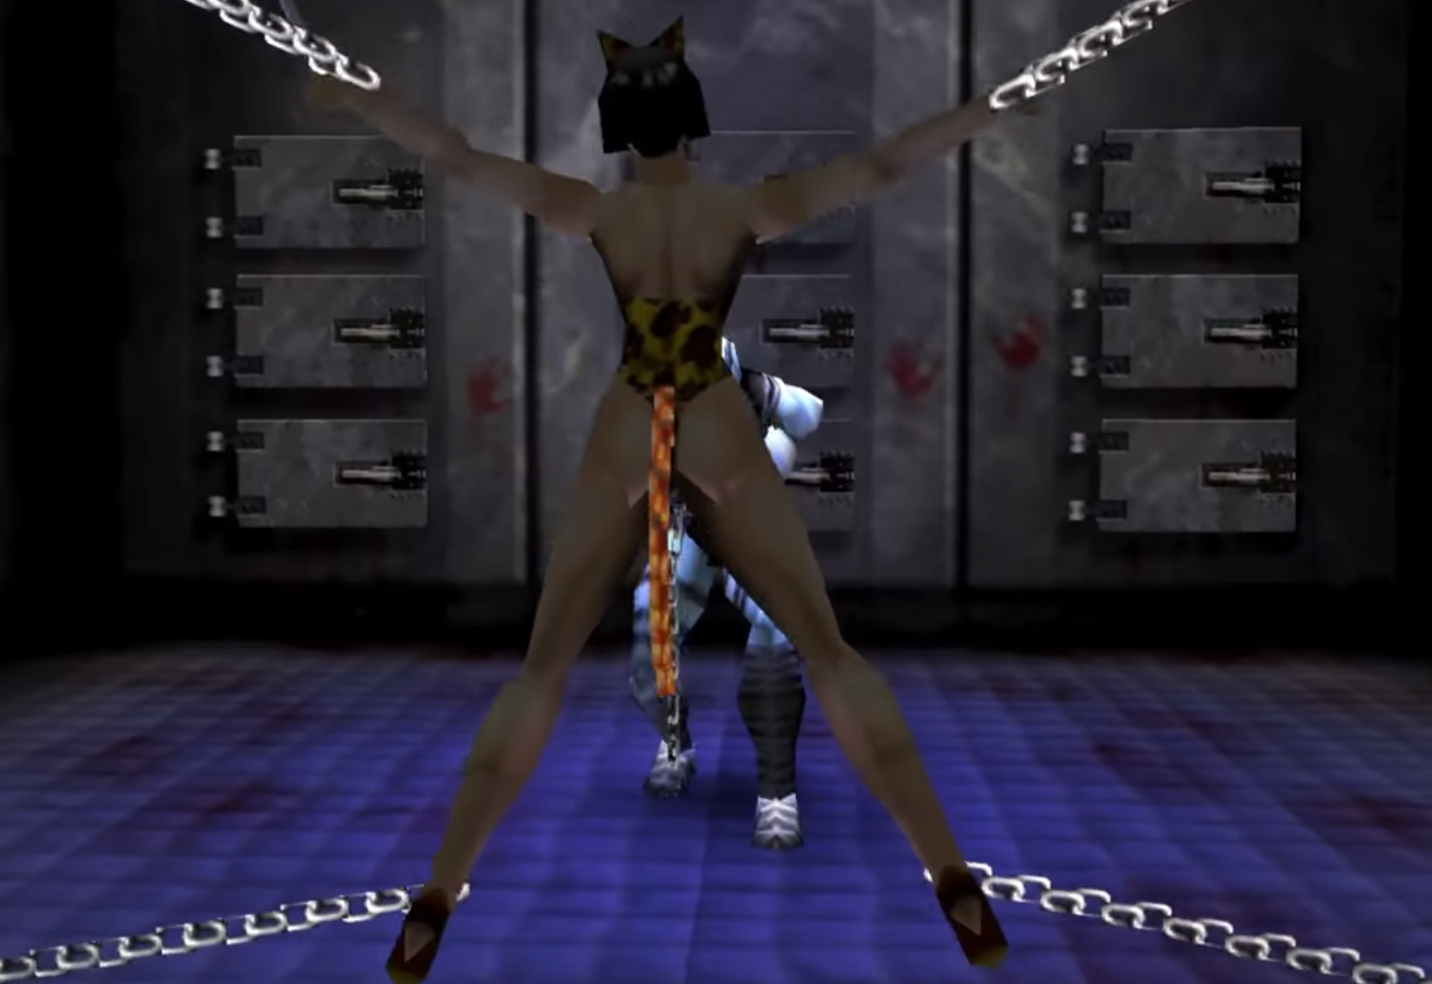 Best of 2018: The story of Thrill Kill, a PS1 fighting game canned by EA for being too controversial